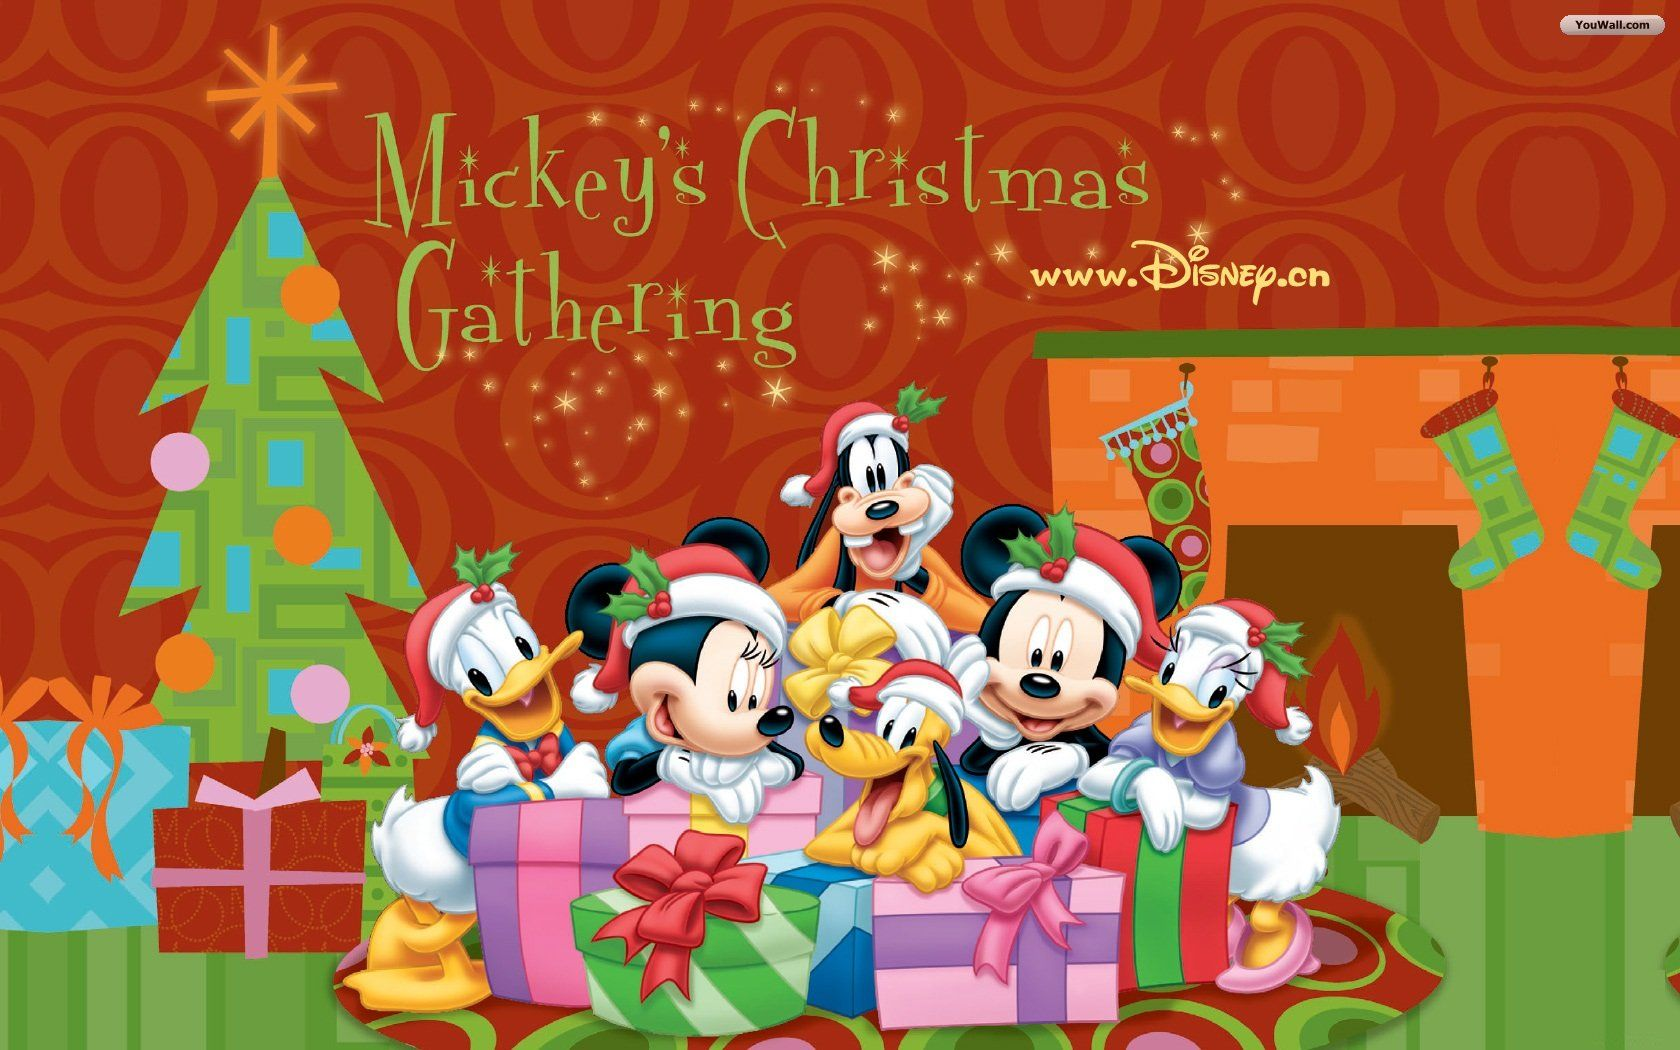 disney girl images imageschristmas new year wallpaperschristmas new yeardisney